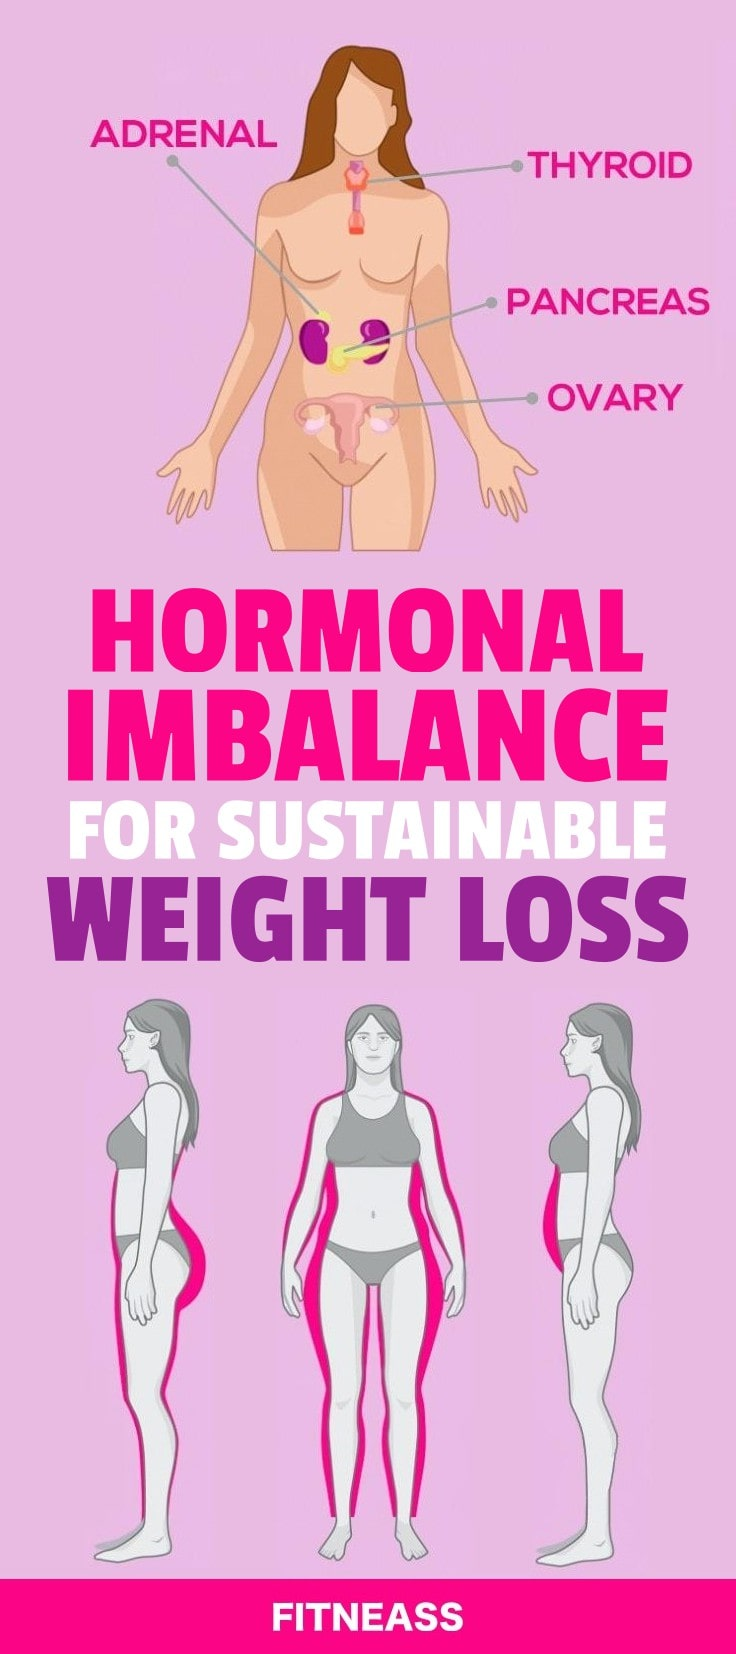 Hormonal Imbalance And Weight Loss Infographic